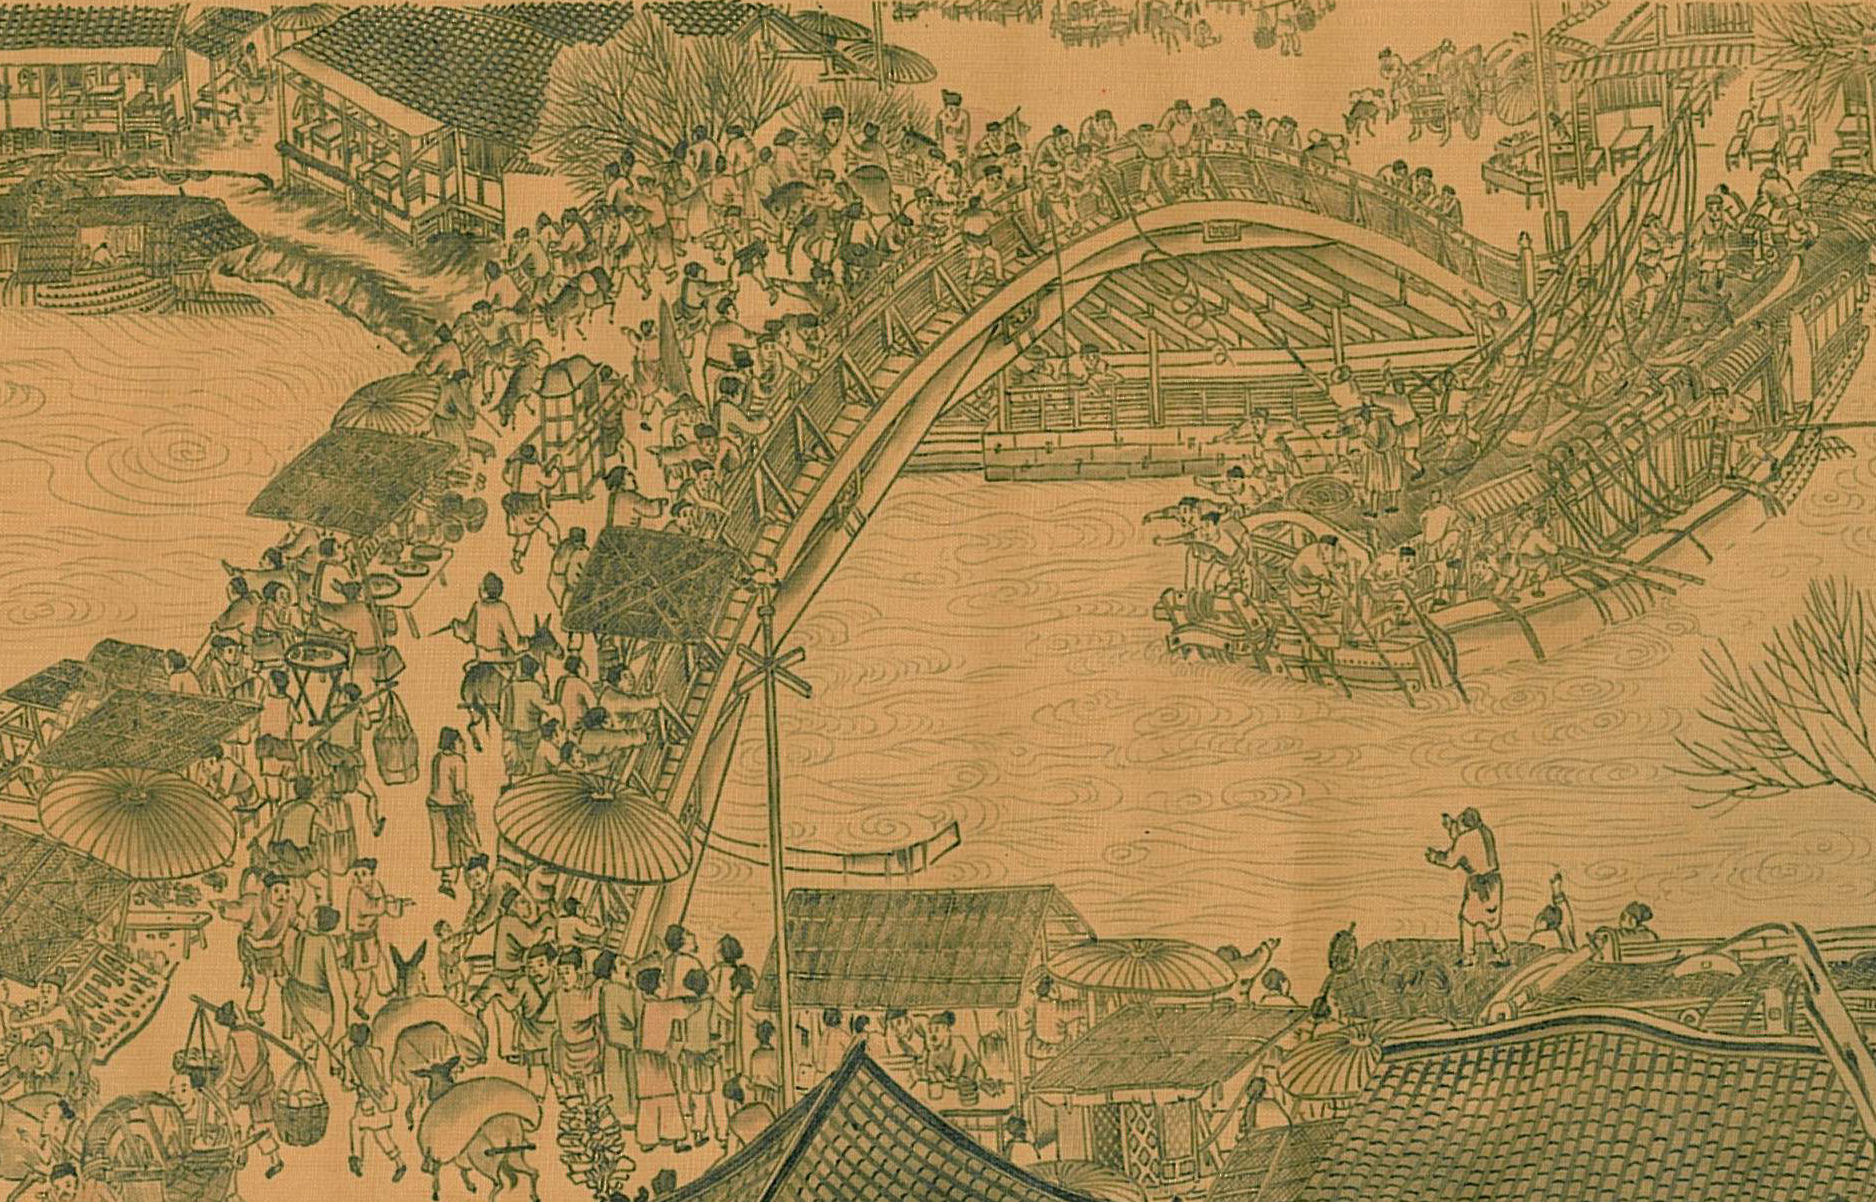 Early chinese civilization: writings and paintings essay